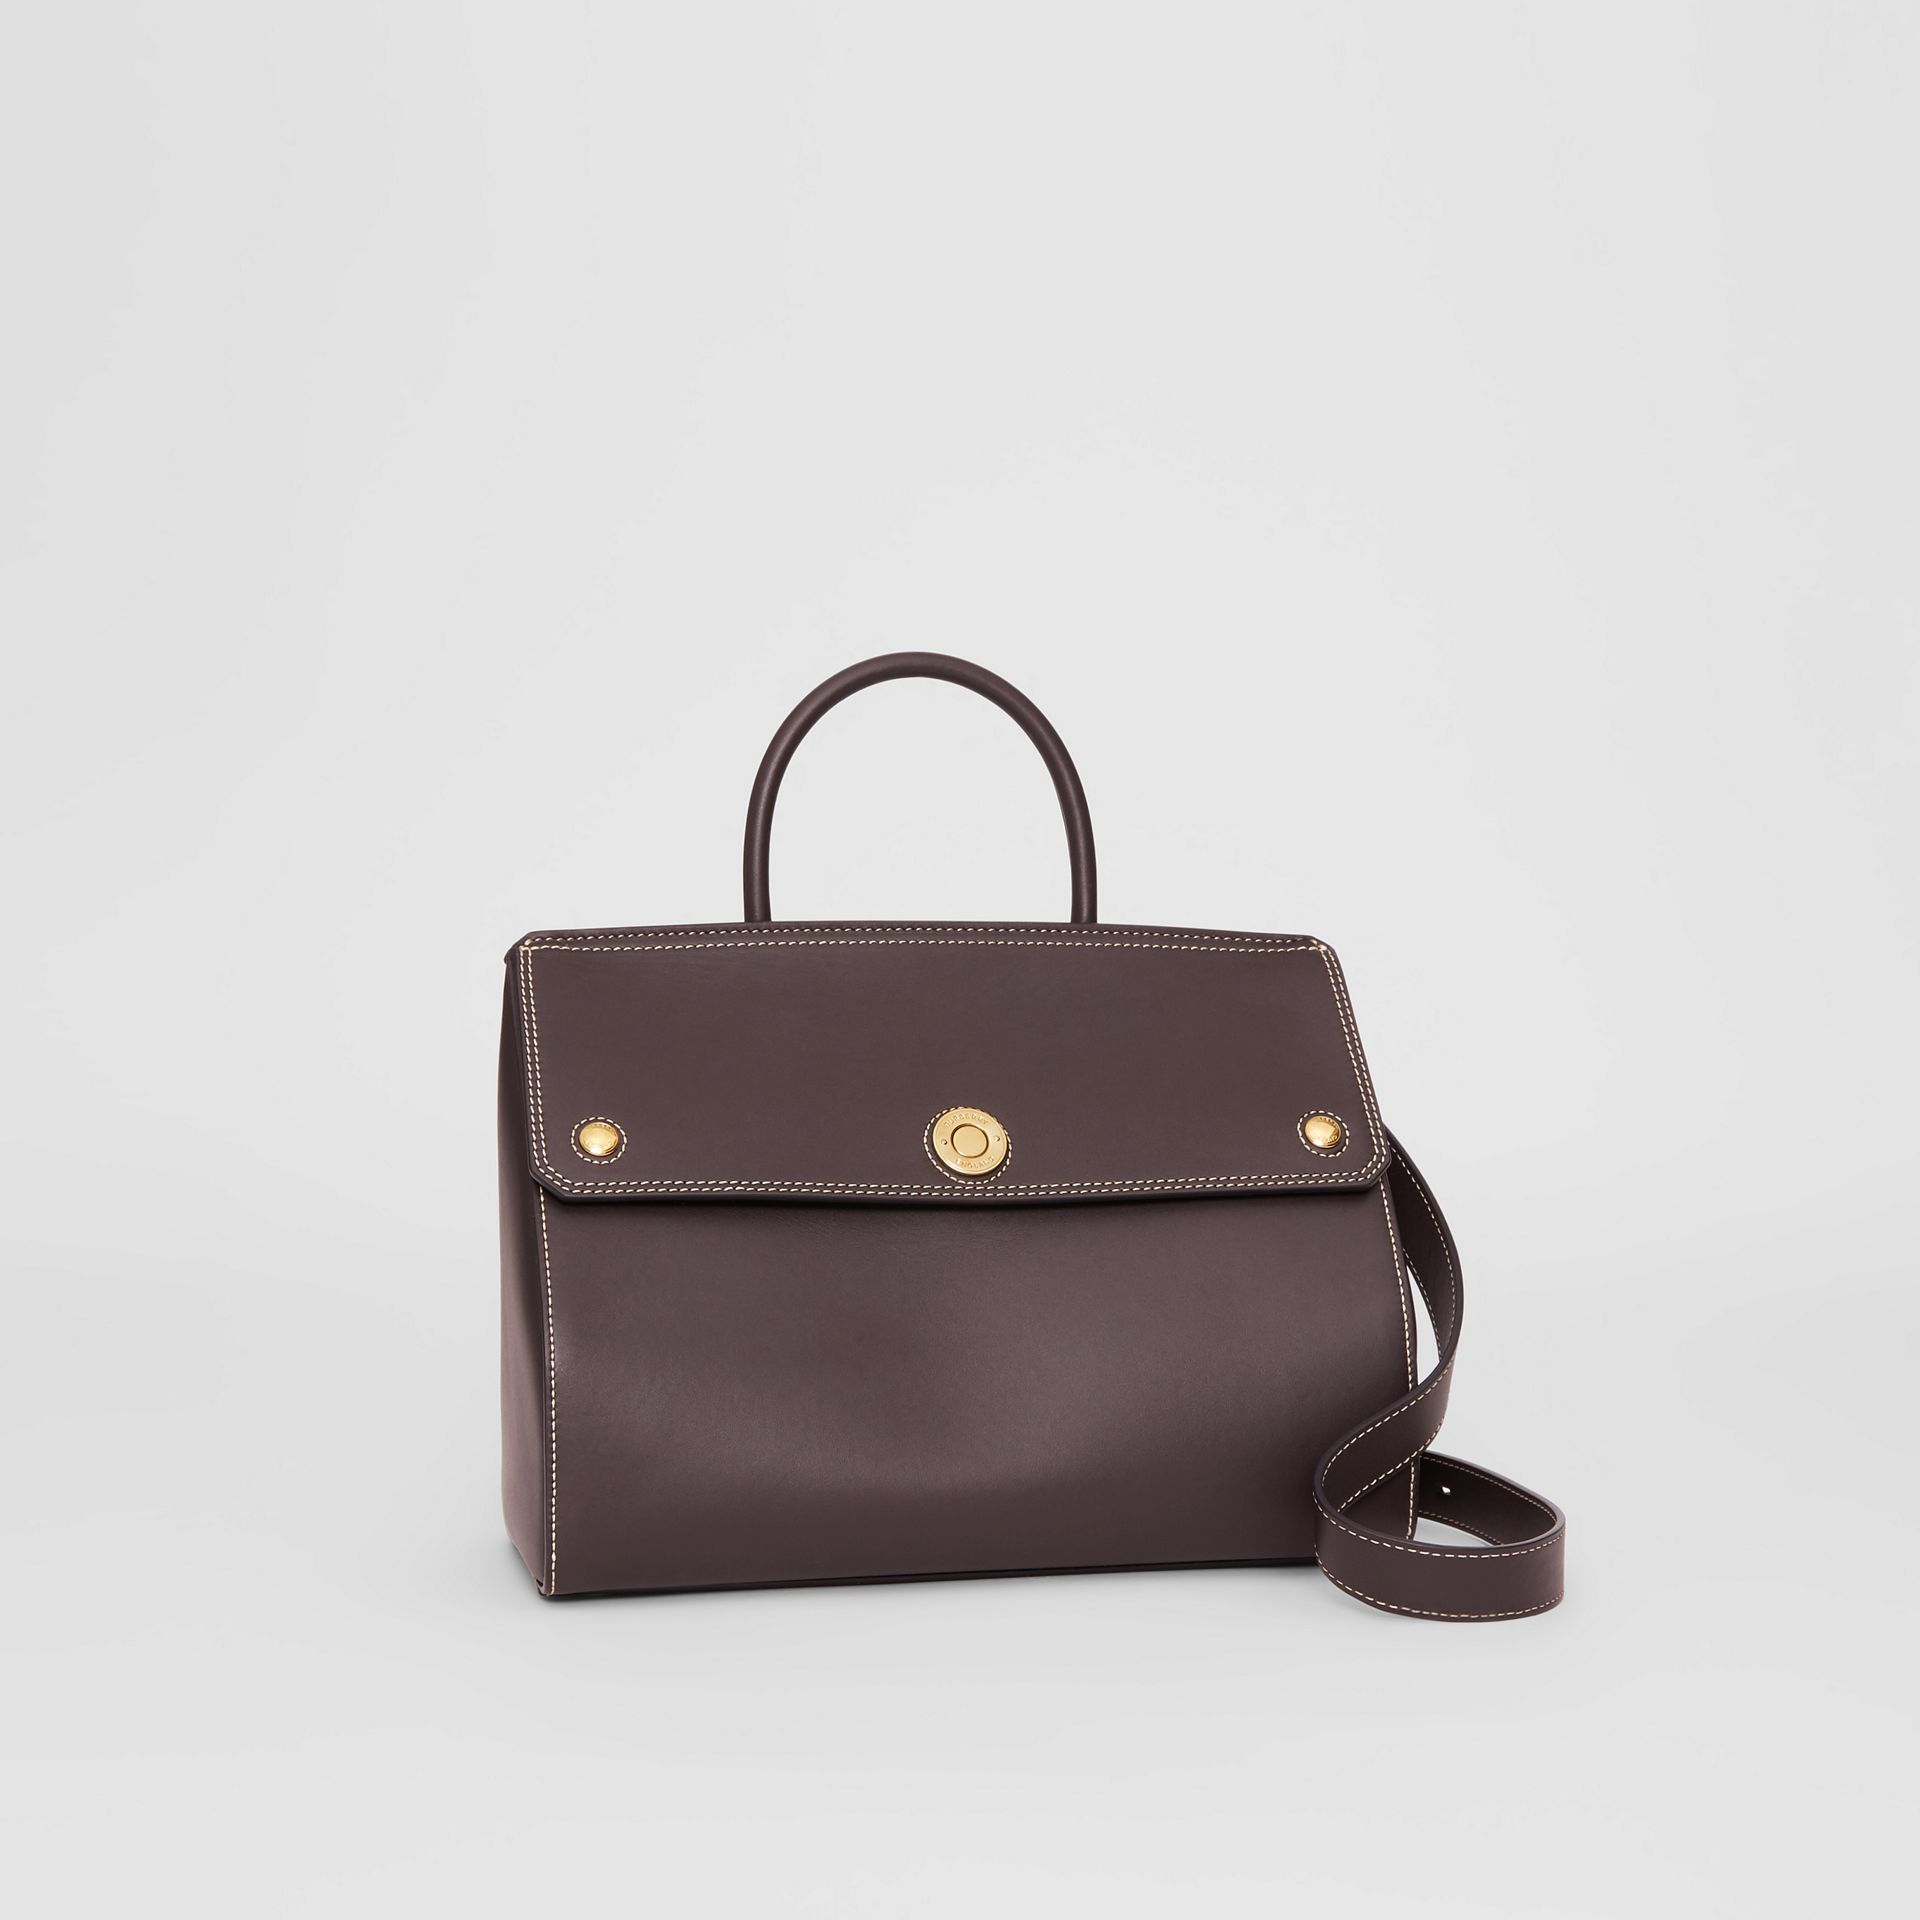 Small Leather Elizabeth Bag in Coffee - Women | Burberry United Kingdom - gallery image 6